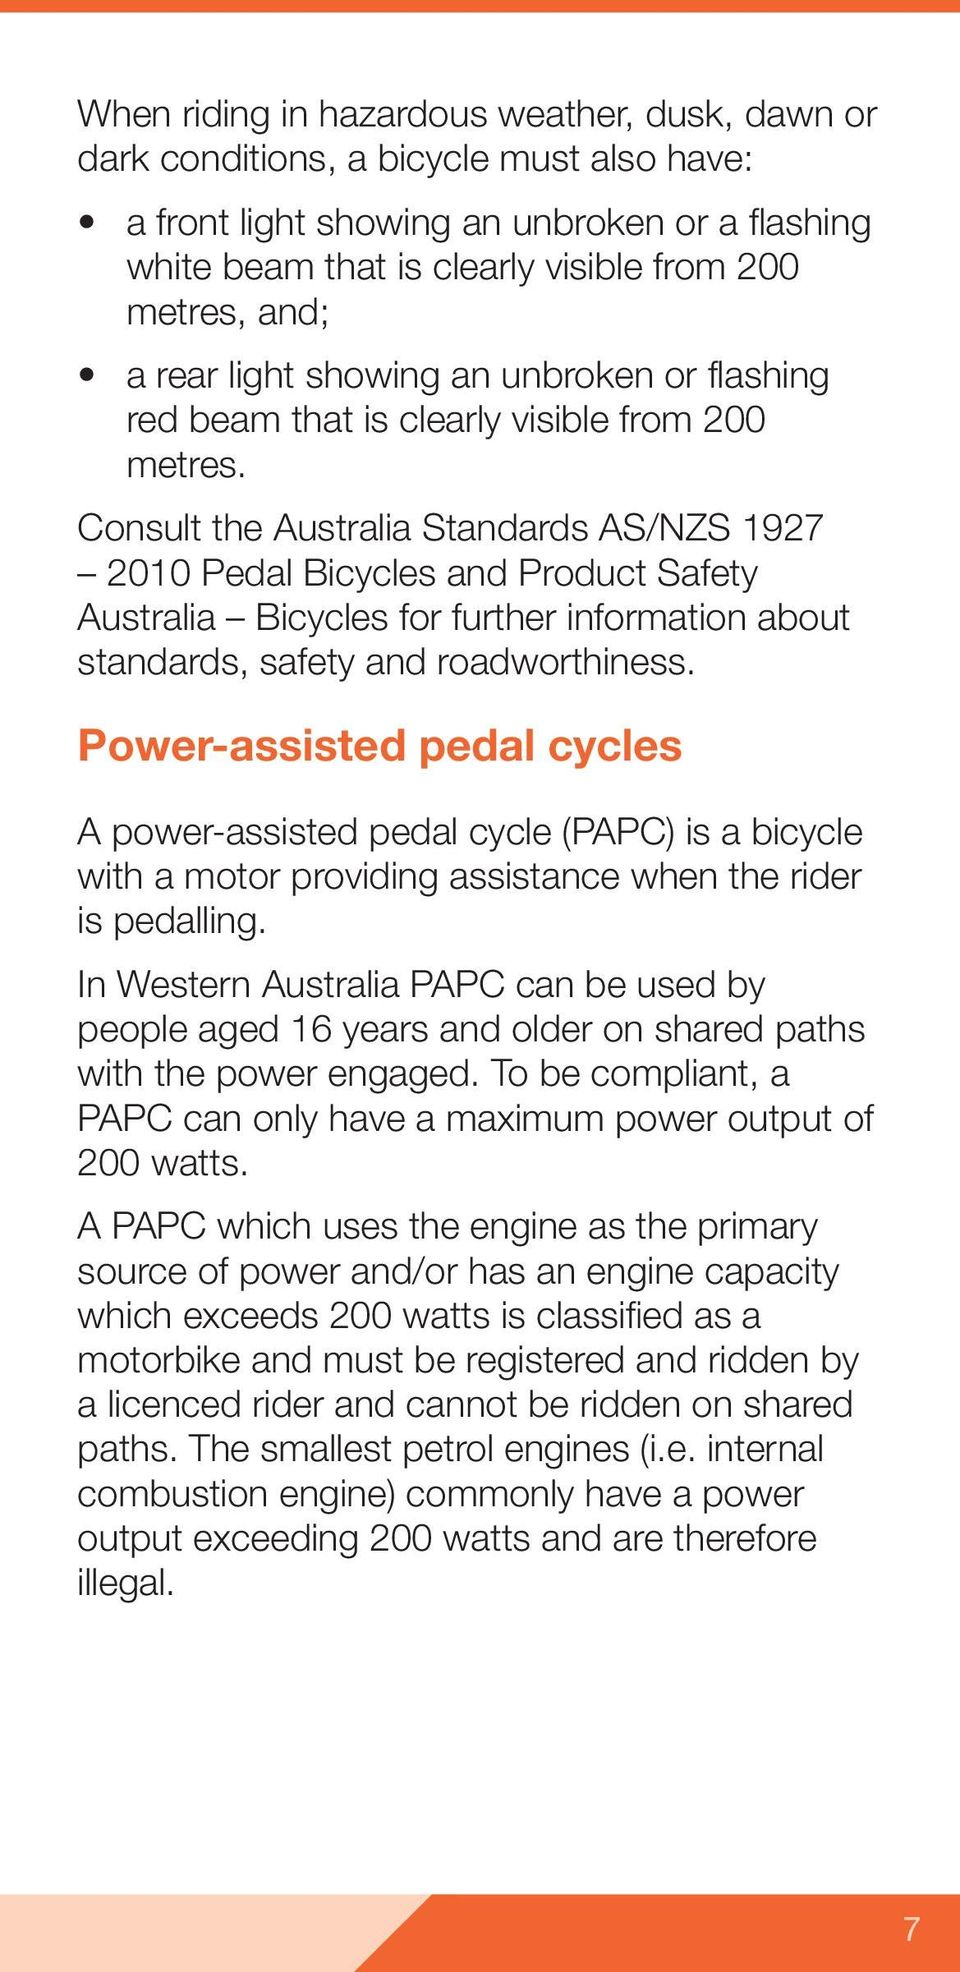 Consult the Australia Standards AS/NZS 1927 2010 Pedal Bicycles and Product Safety Australia Bicycles for further information about standards, safety and roadworthiness.